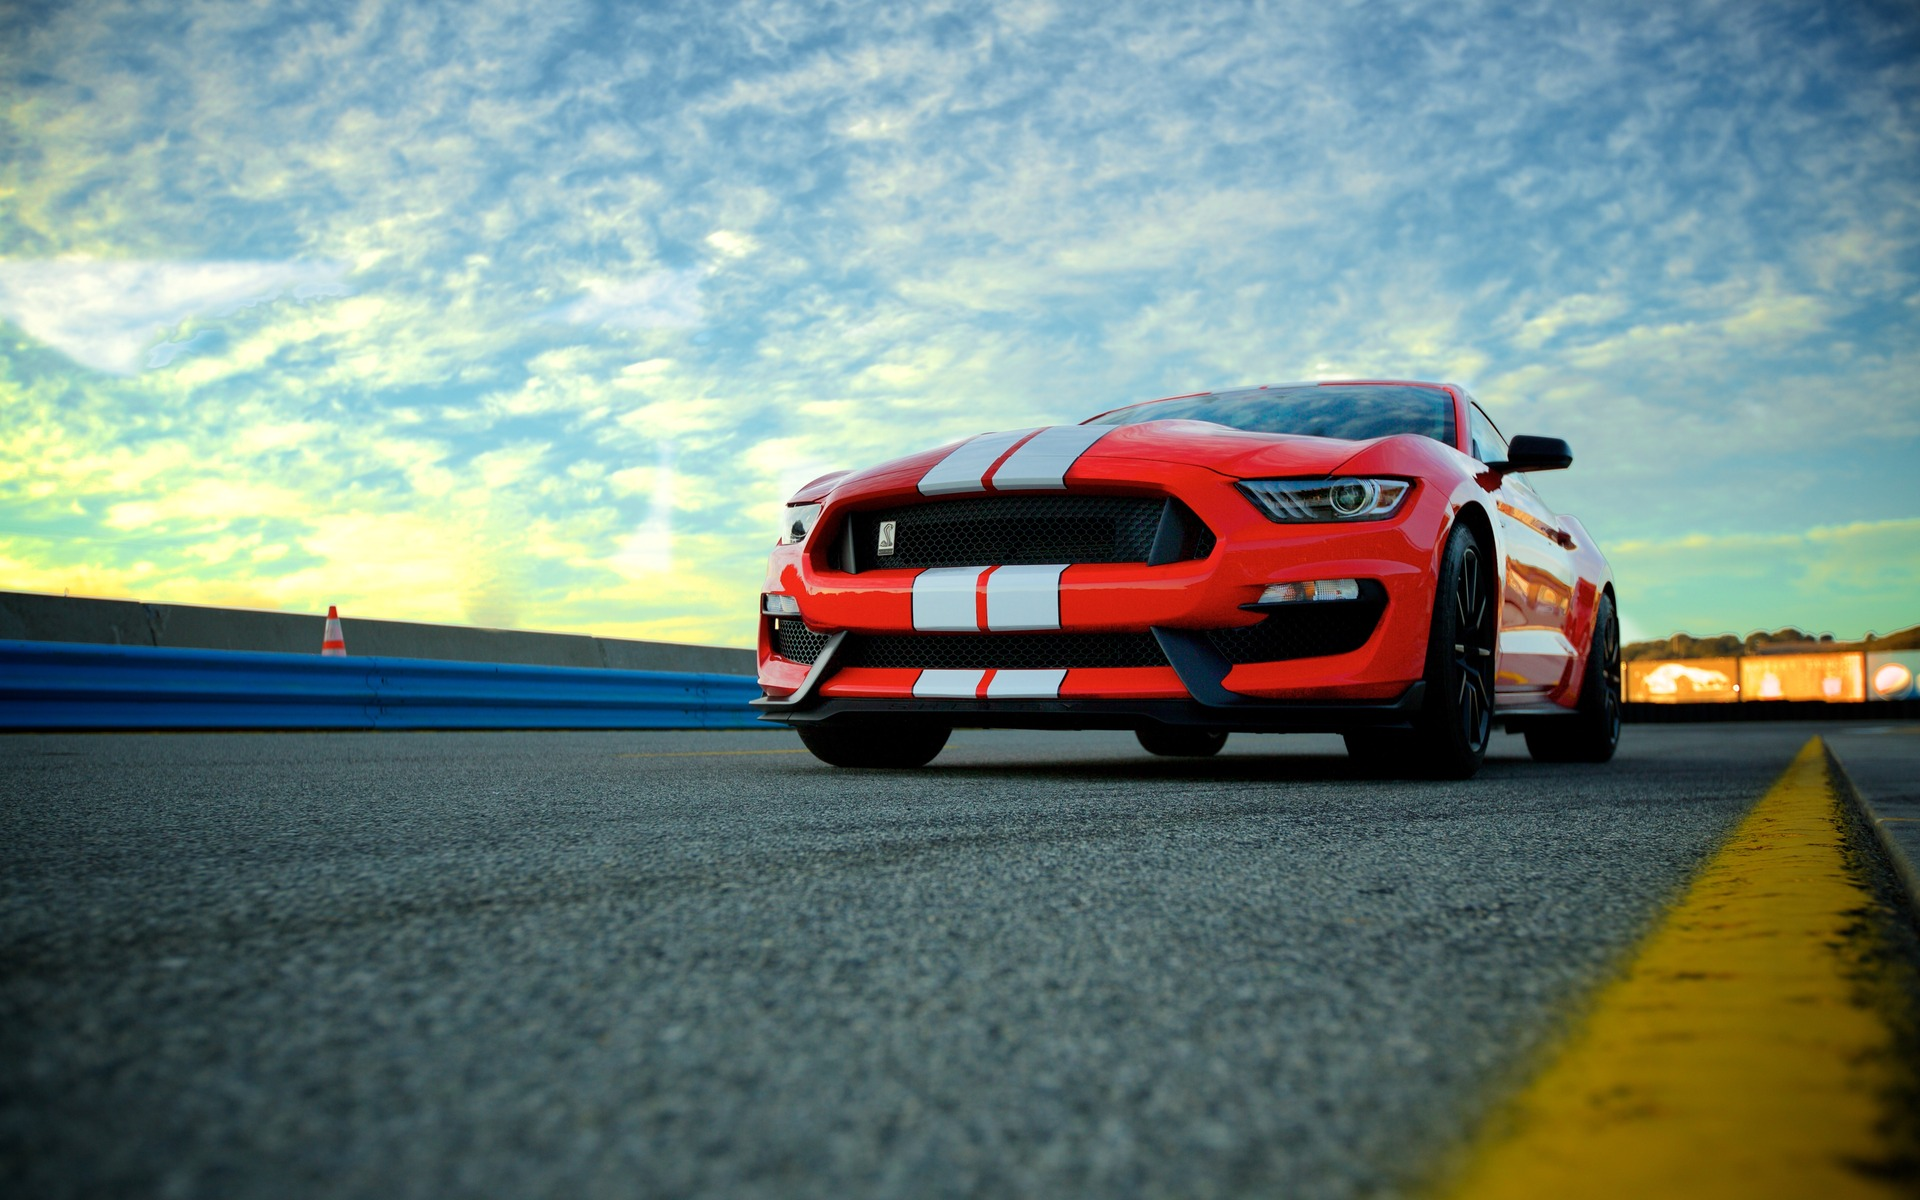 2016 Ford Mustang Shelby Gt350 At The Wheel Of The Best